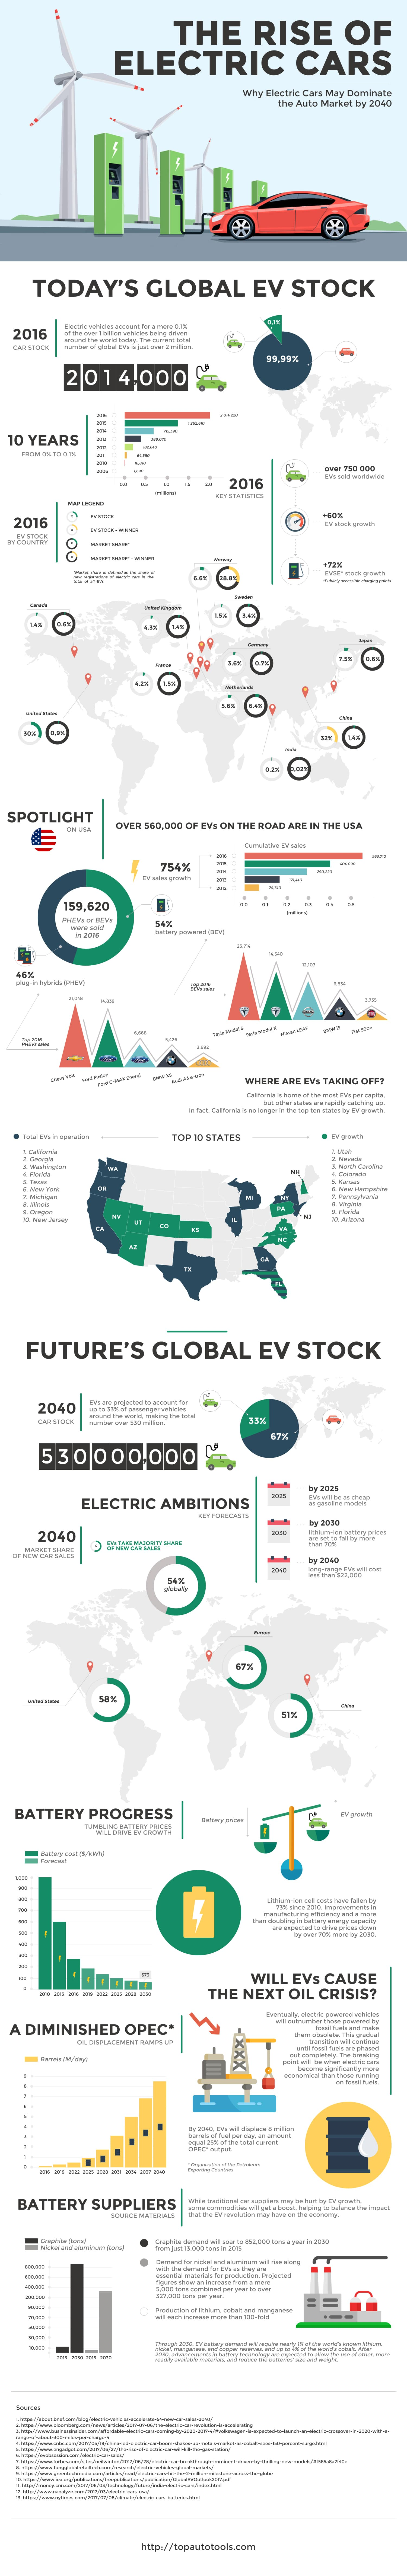 Unstoppable Rise Electric Cars Infographic